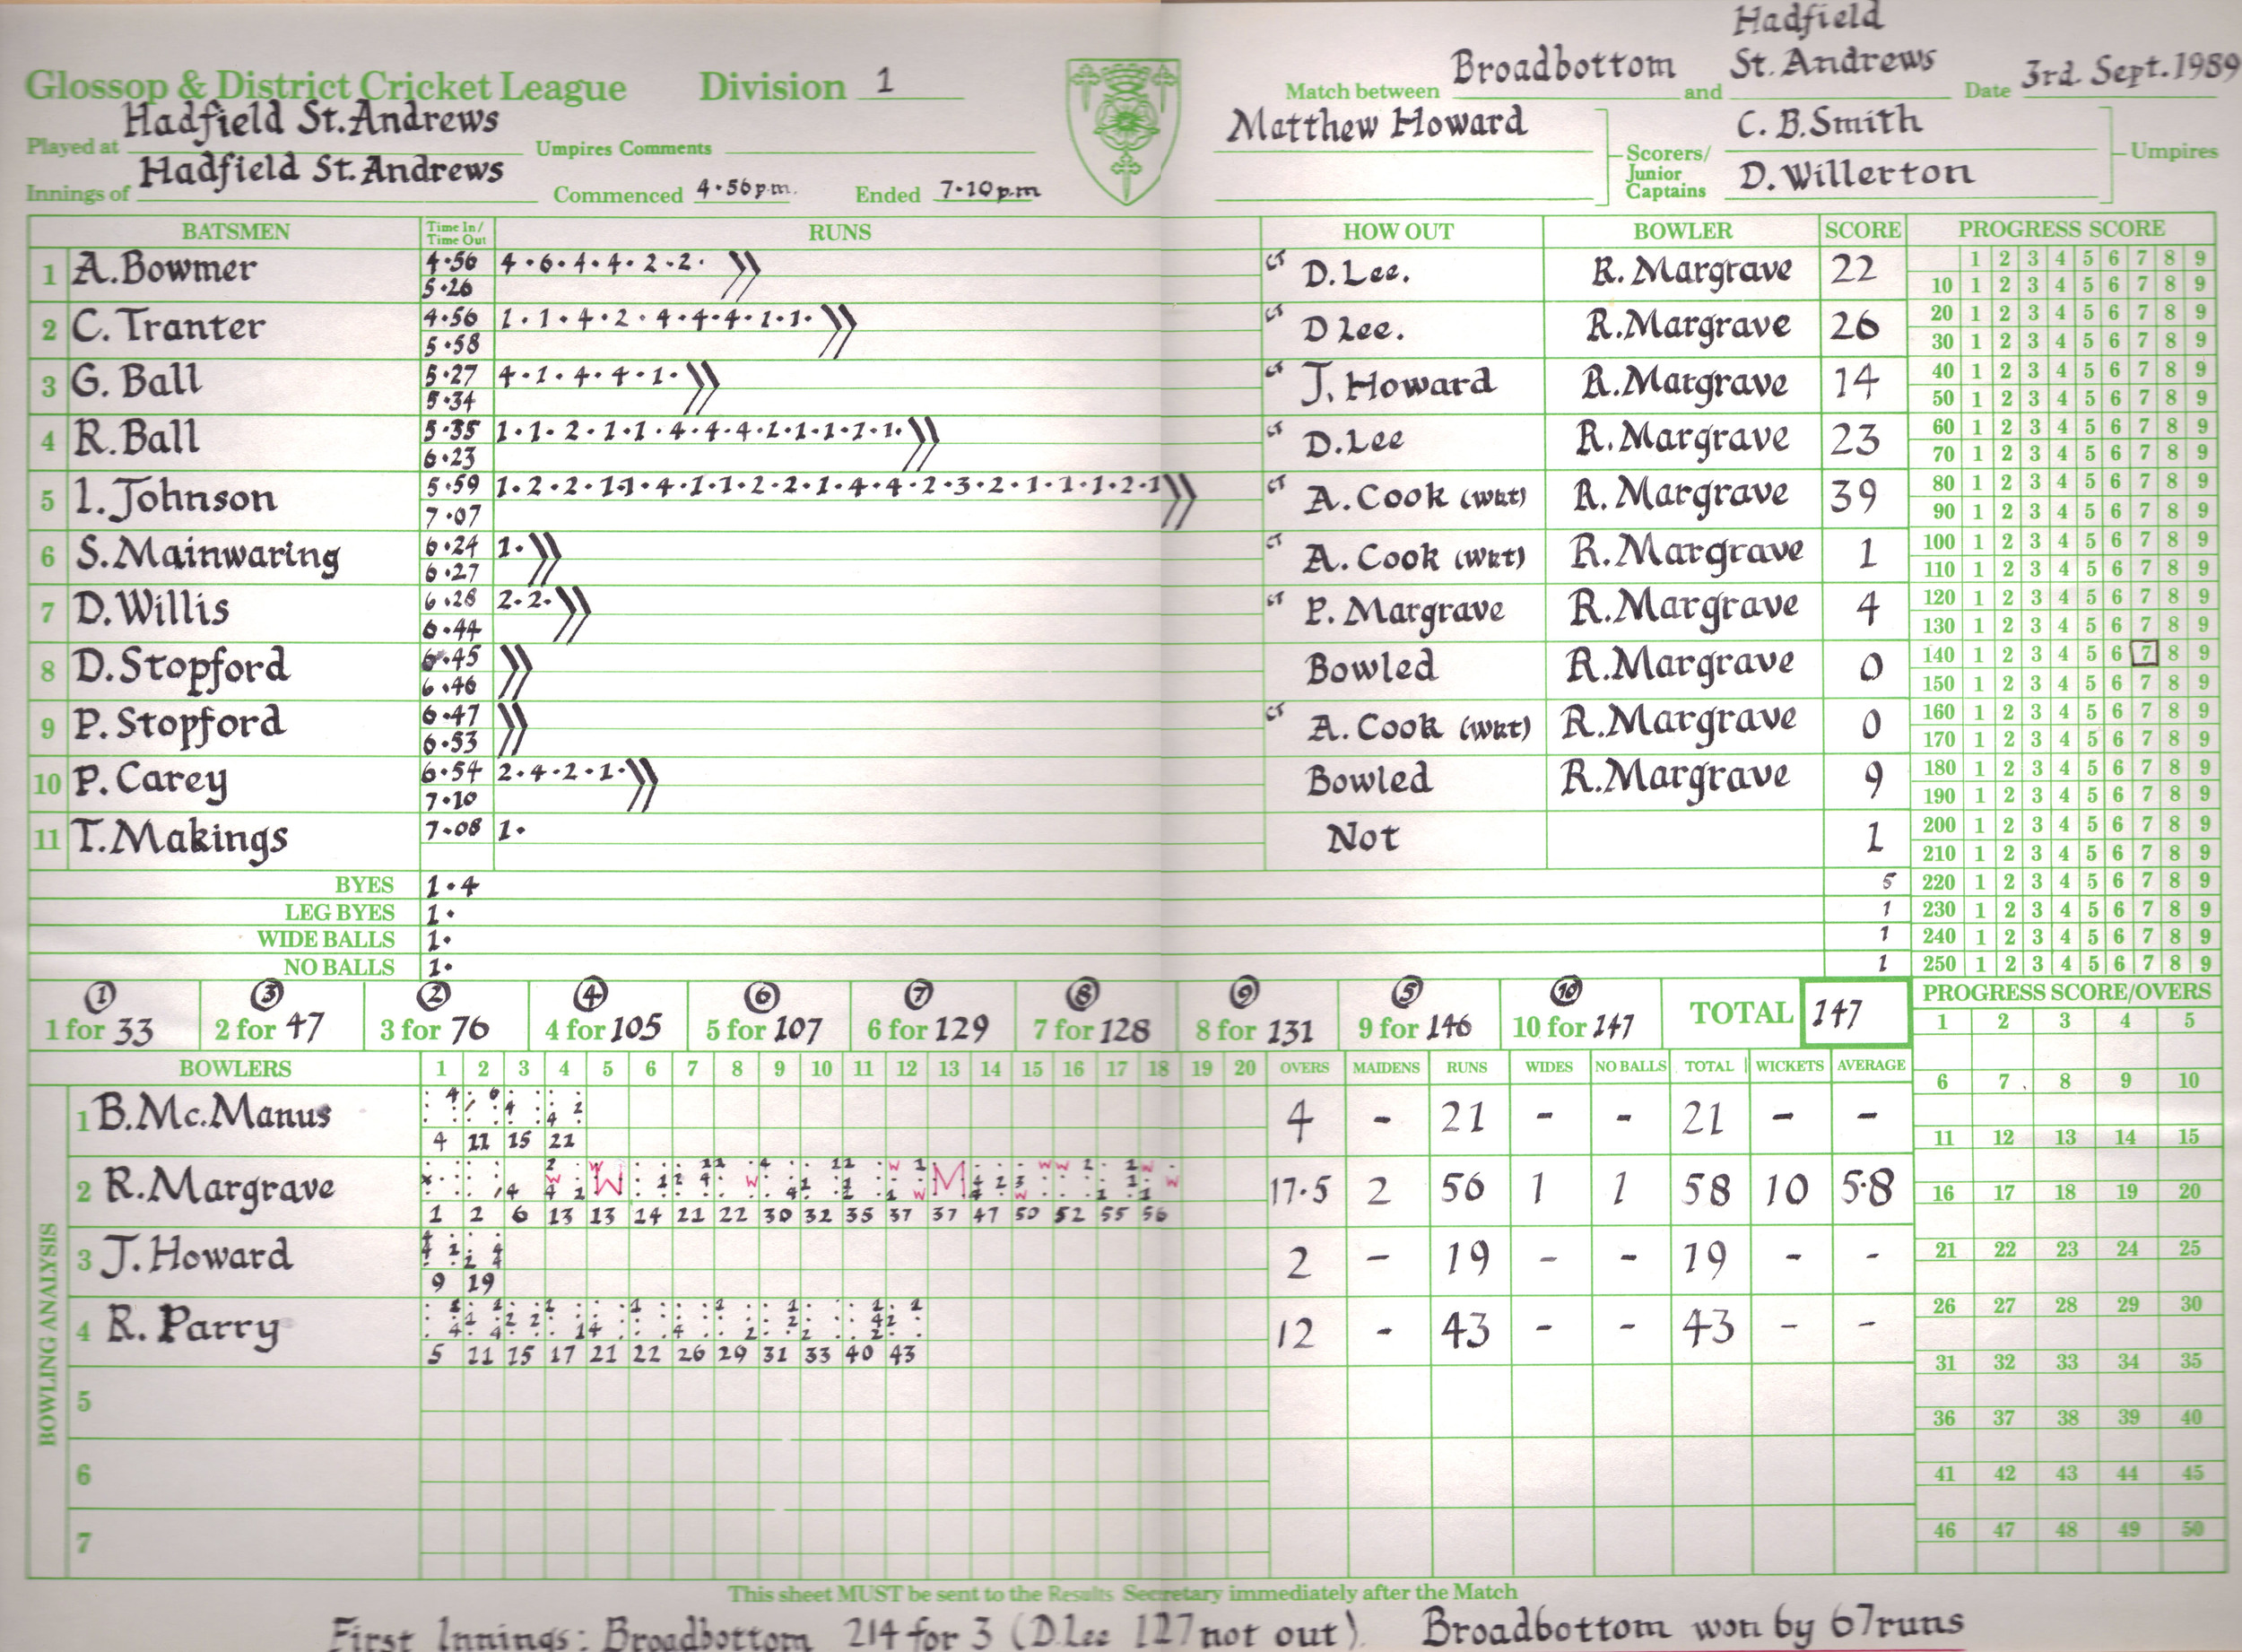 10 wickets in an innings, R. Margrave 3rd Sept, 1989 vs. Hadfield St. Andrews